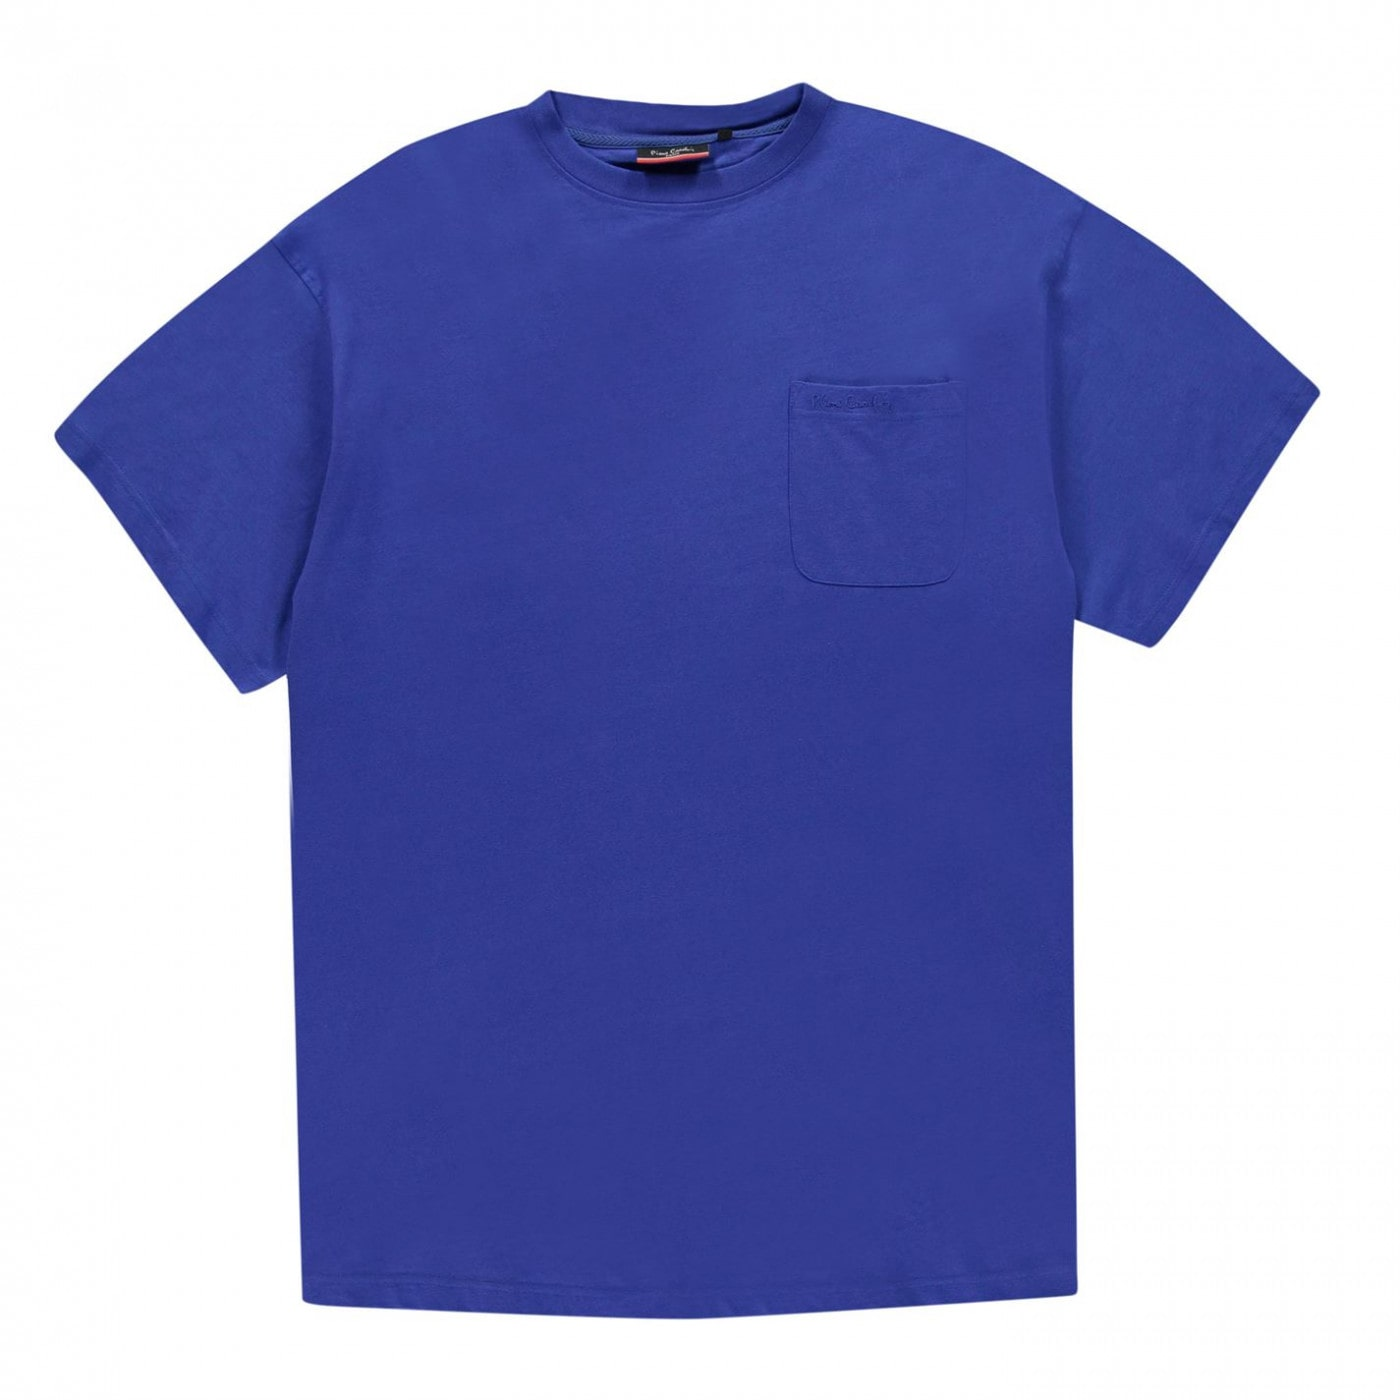 Pierre Cardin Extra Large Single Pocket T Shirt Mens